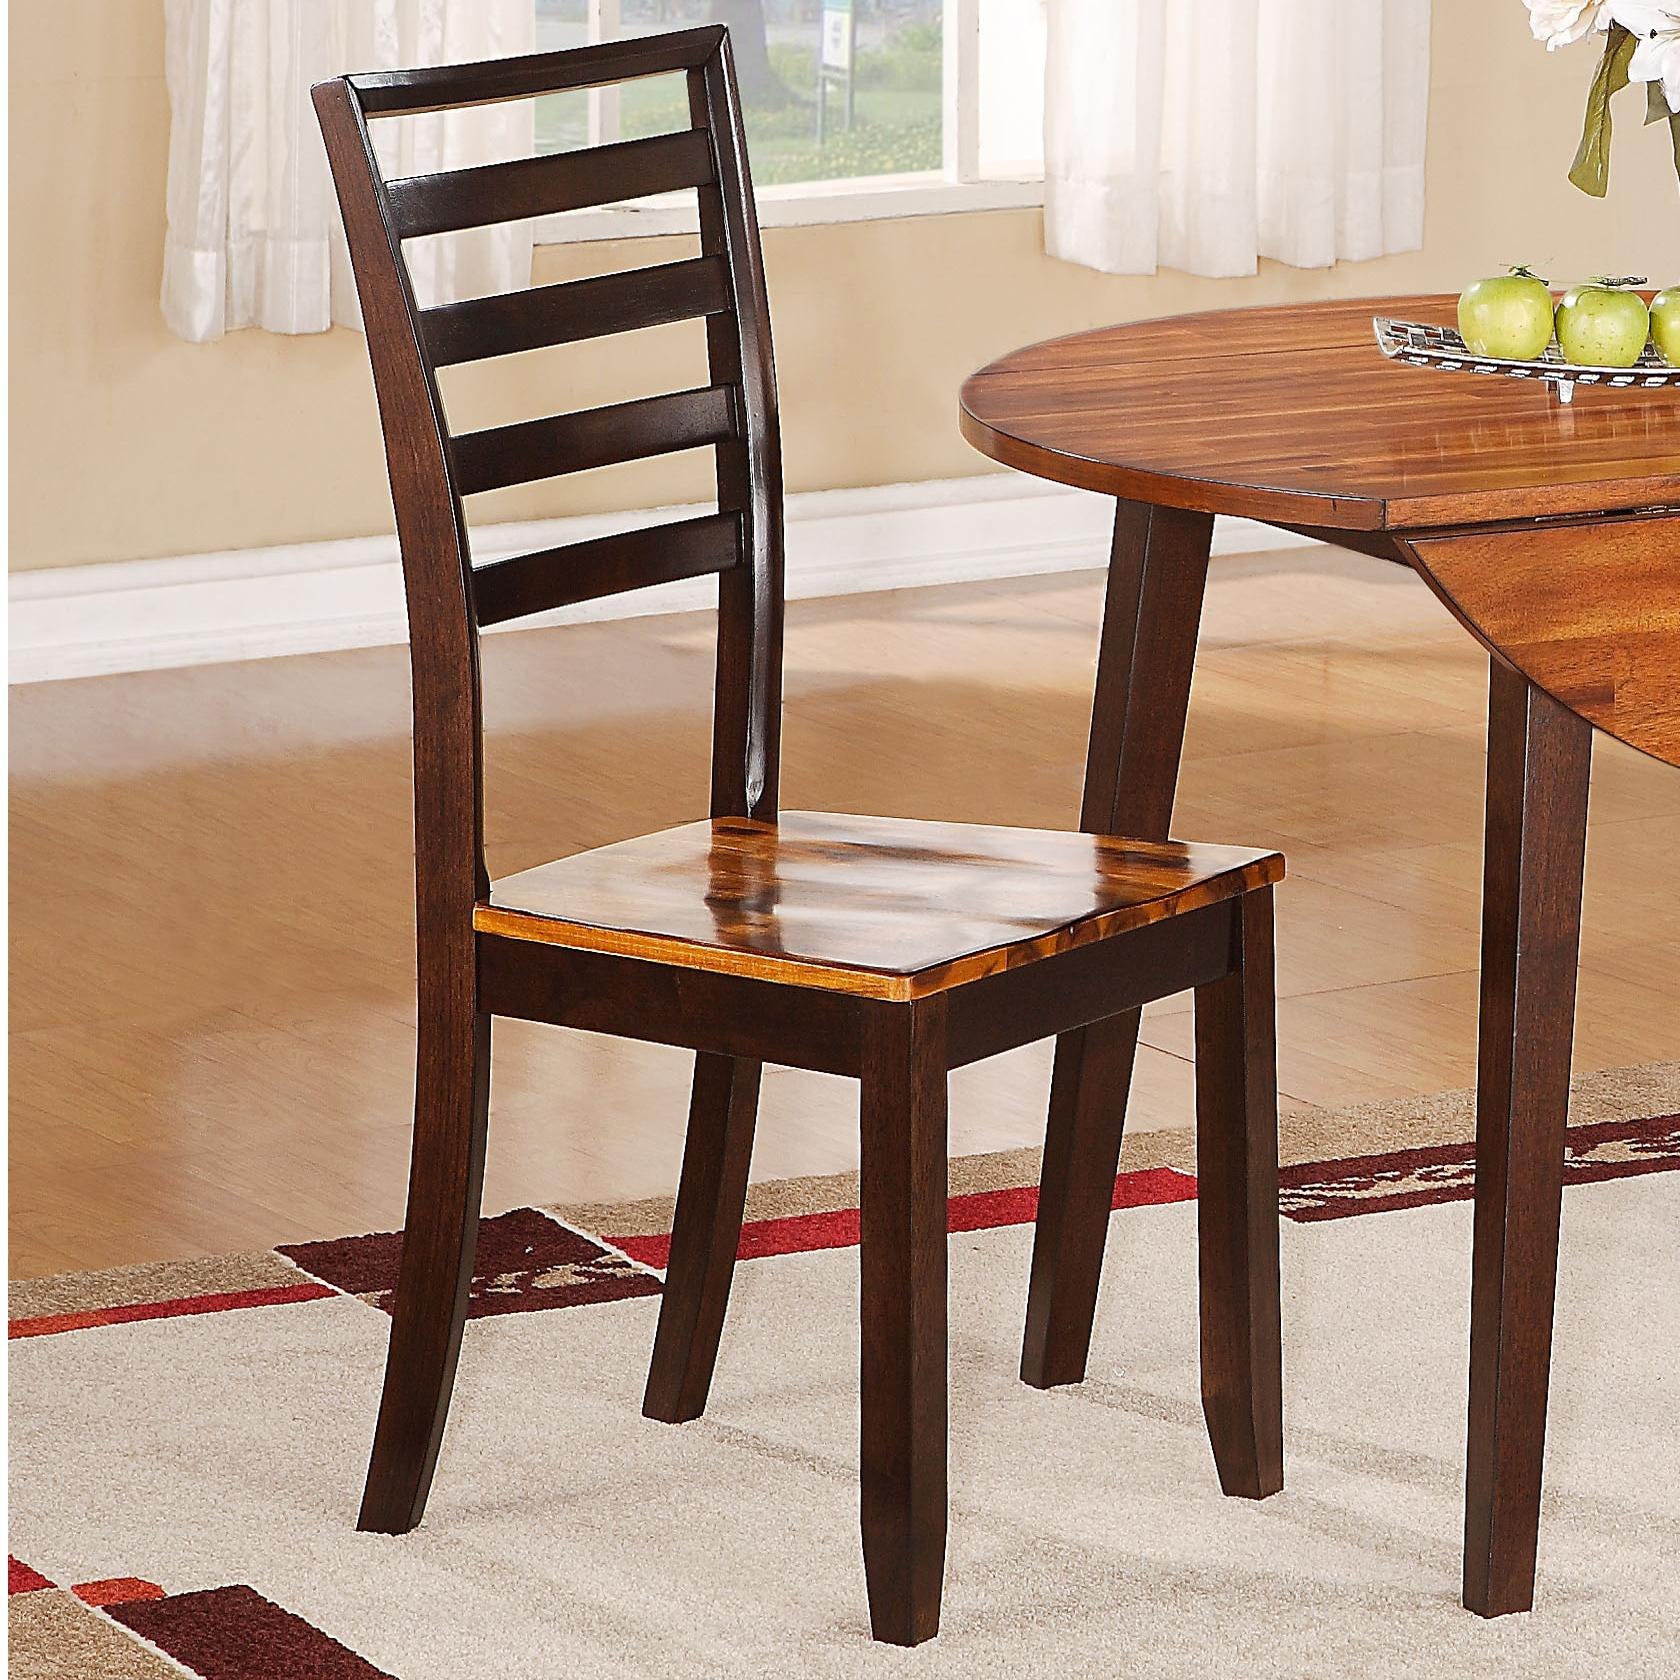 Greer Side Chair by HH at Walker's Furniture